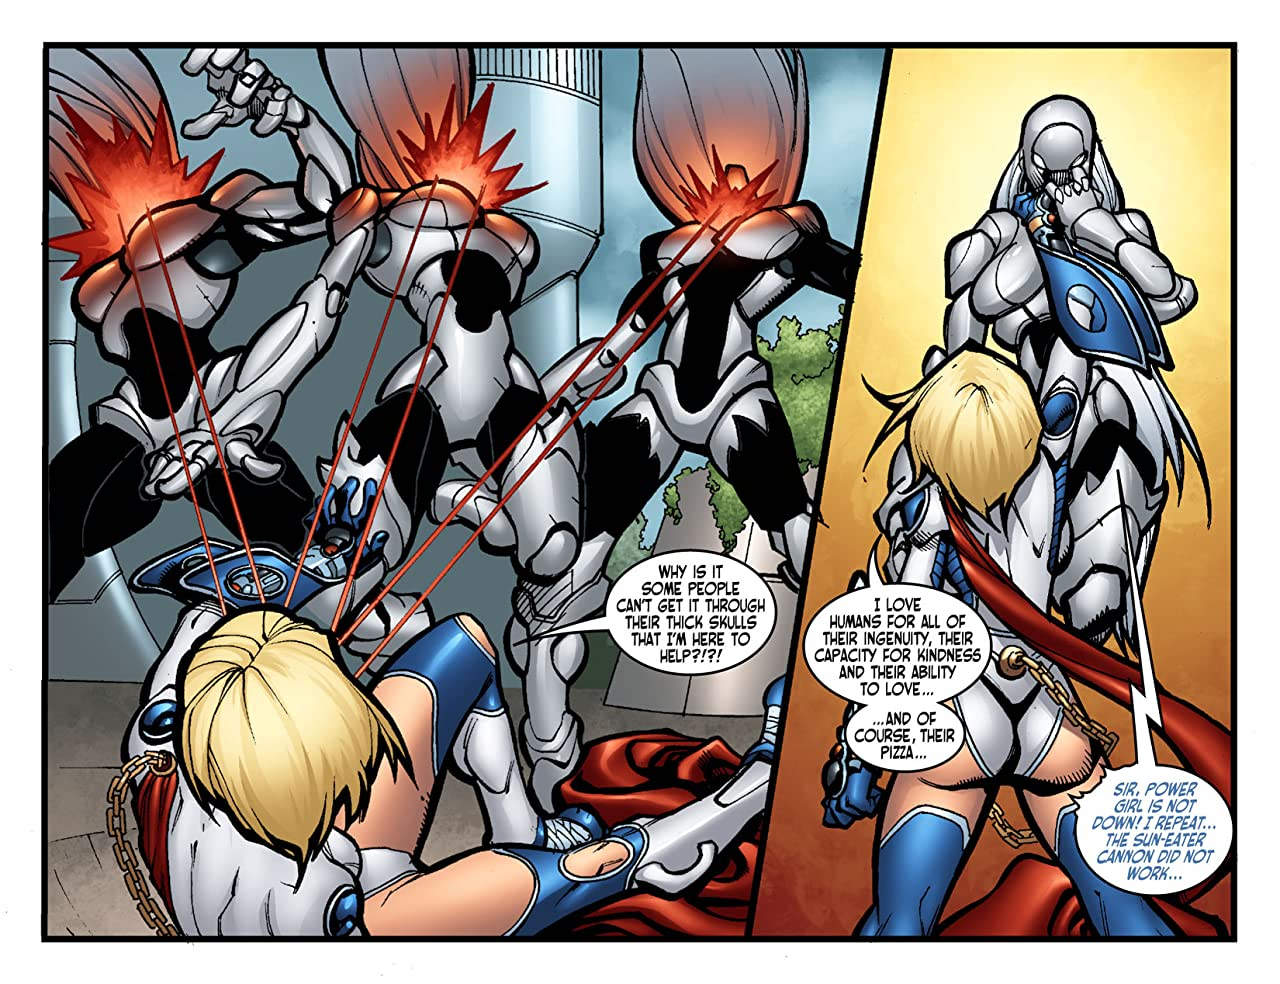 Ame-Comi IV: Power Girl #2